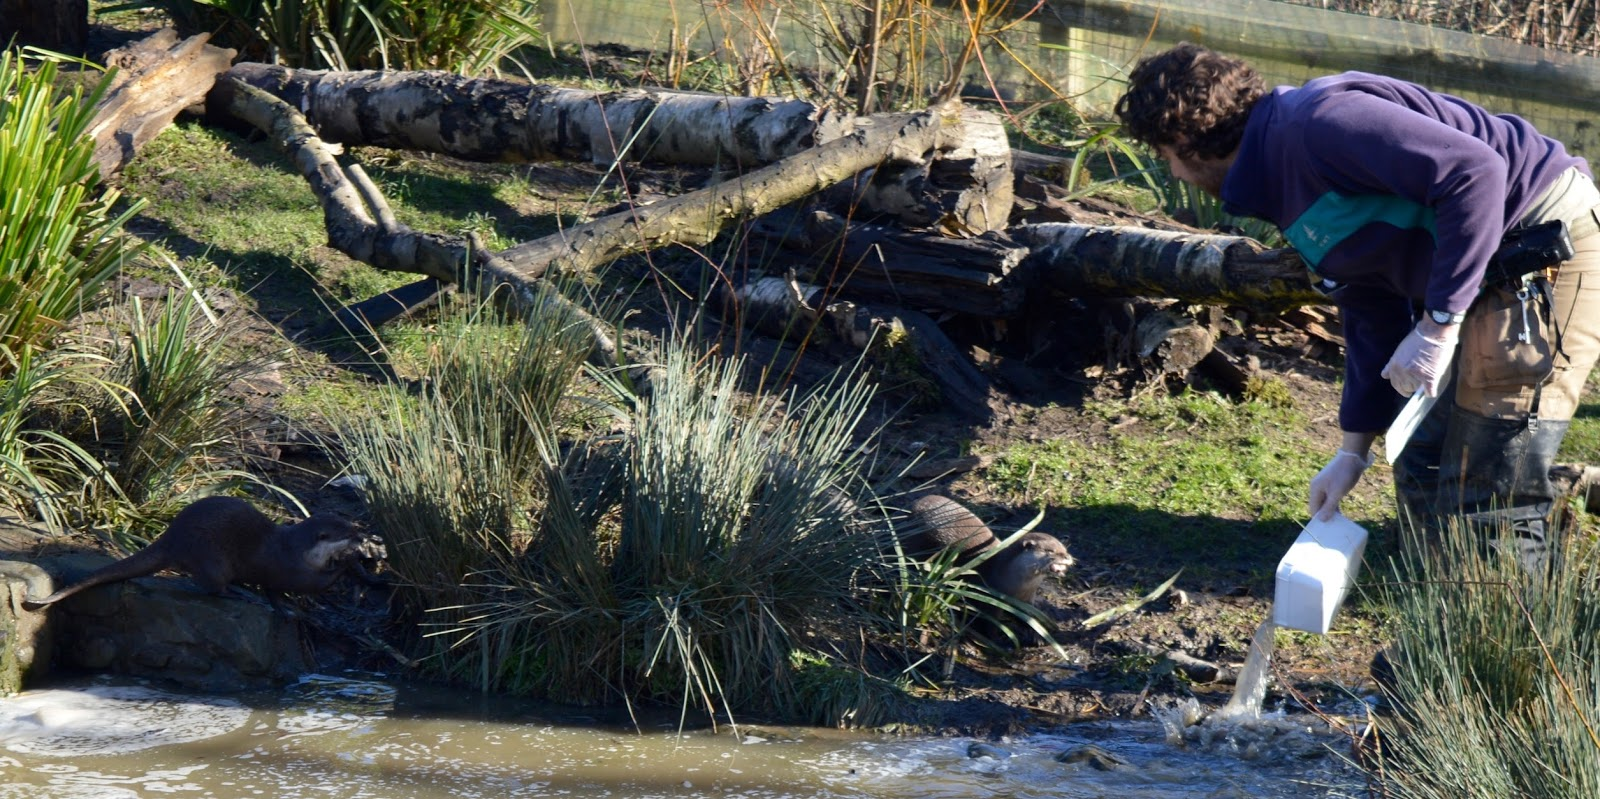 WWT Washington Wetland Centre | An Accessible North East Day Out for the Whole Family - otter keeper feed and talk